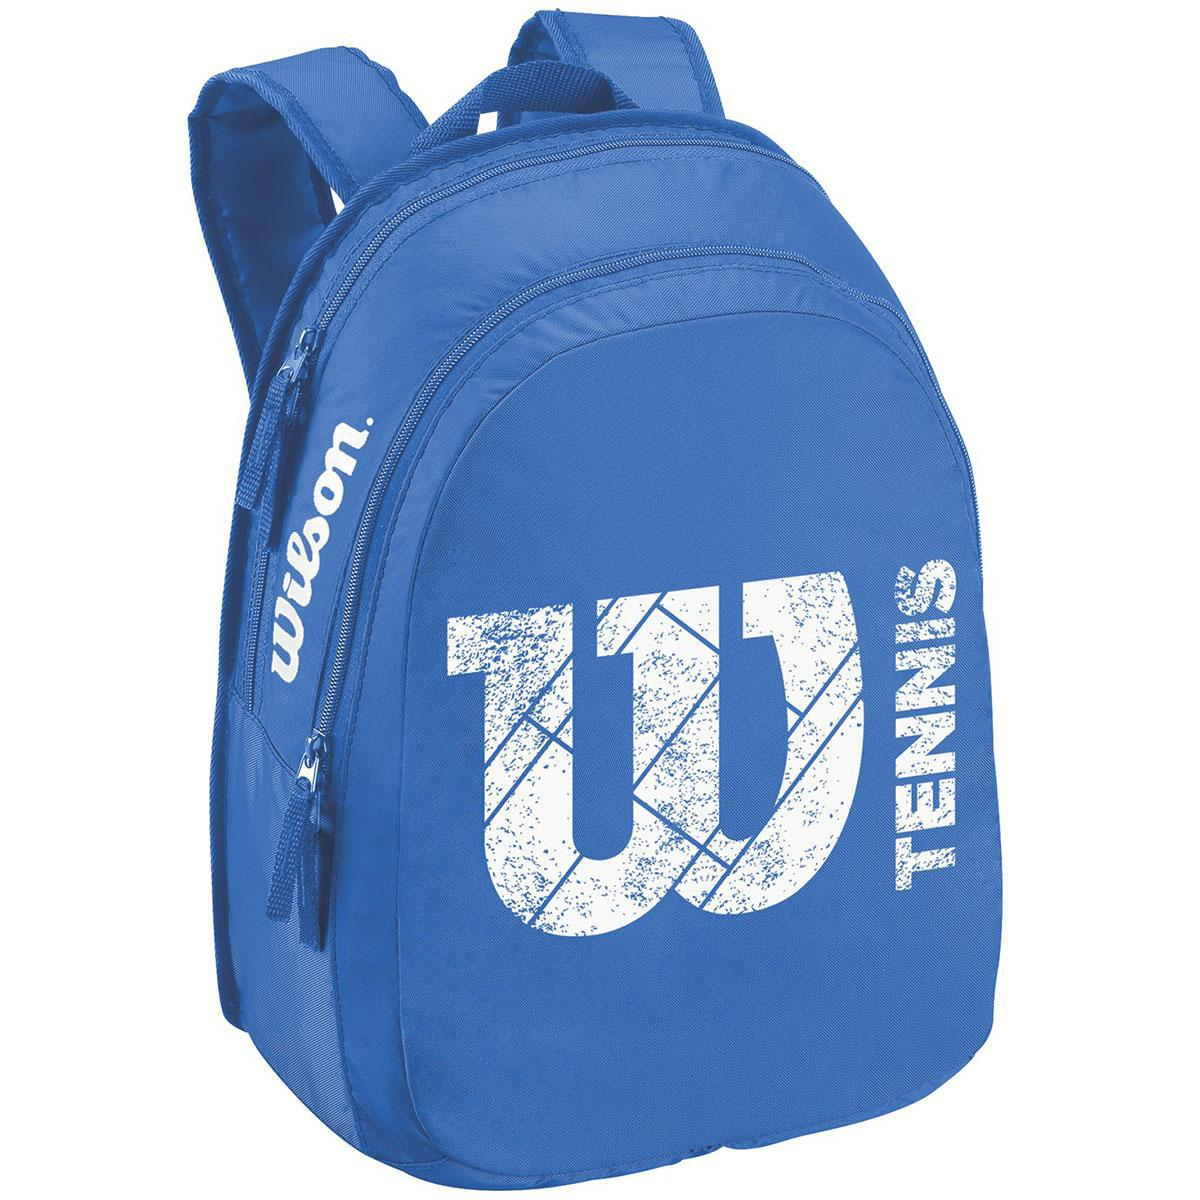 ca2b7f94225 Wilson Match Junior Backpack - Blue - Tennisnuts.com